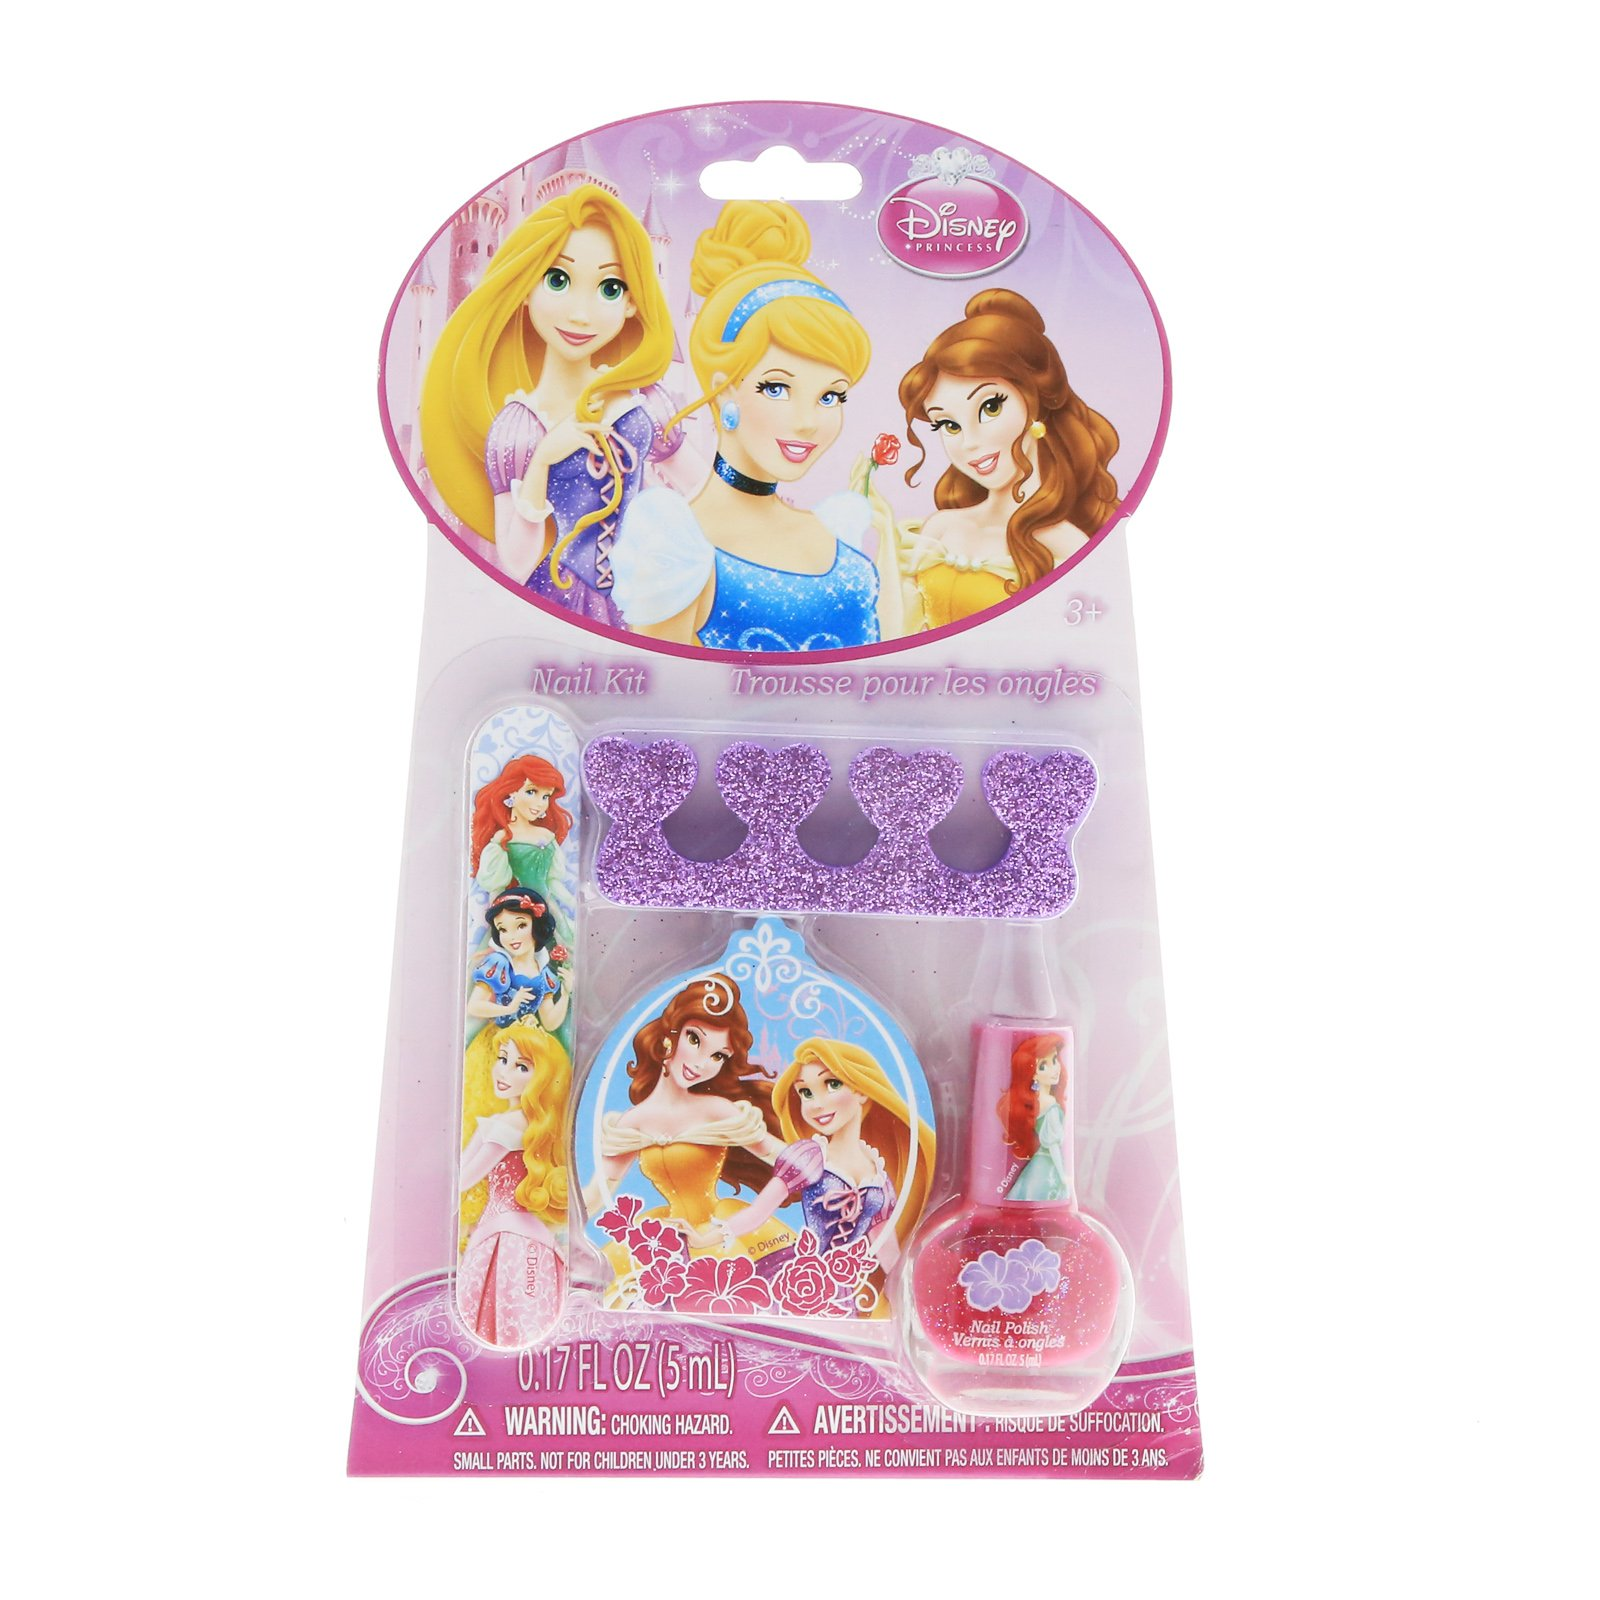 Disney Princess Nail Kit 4 Piece Gift Set Girls Pretend Play